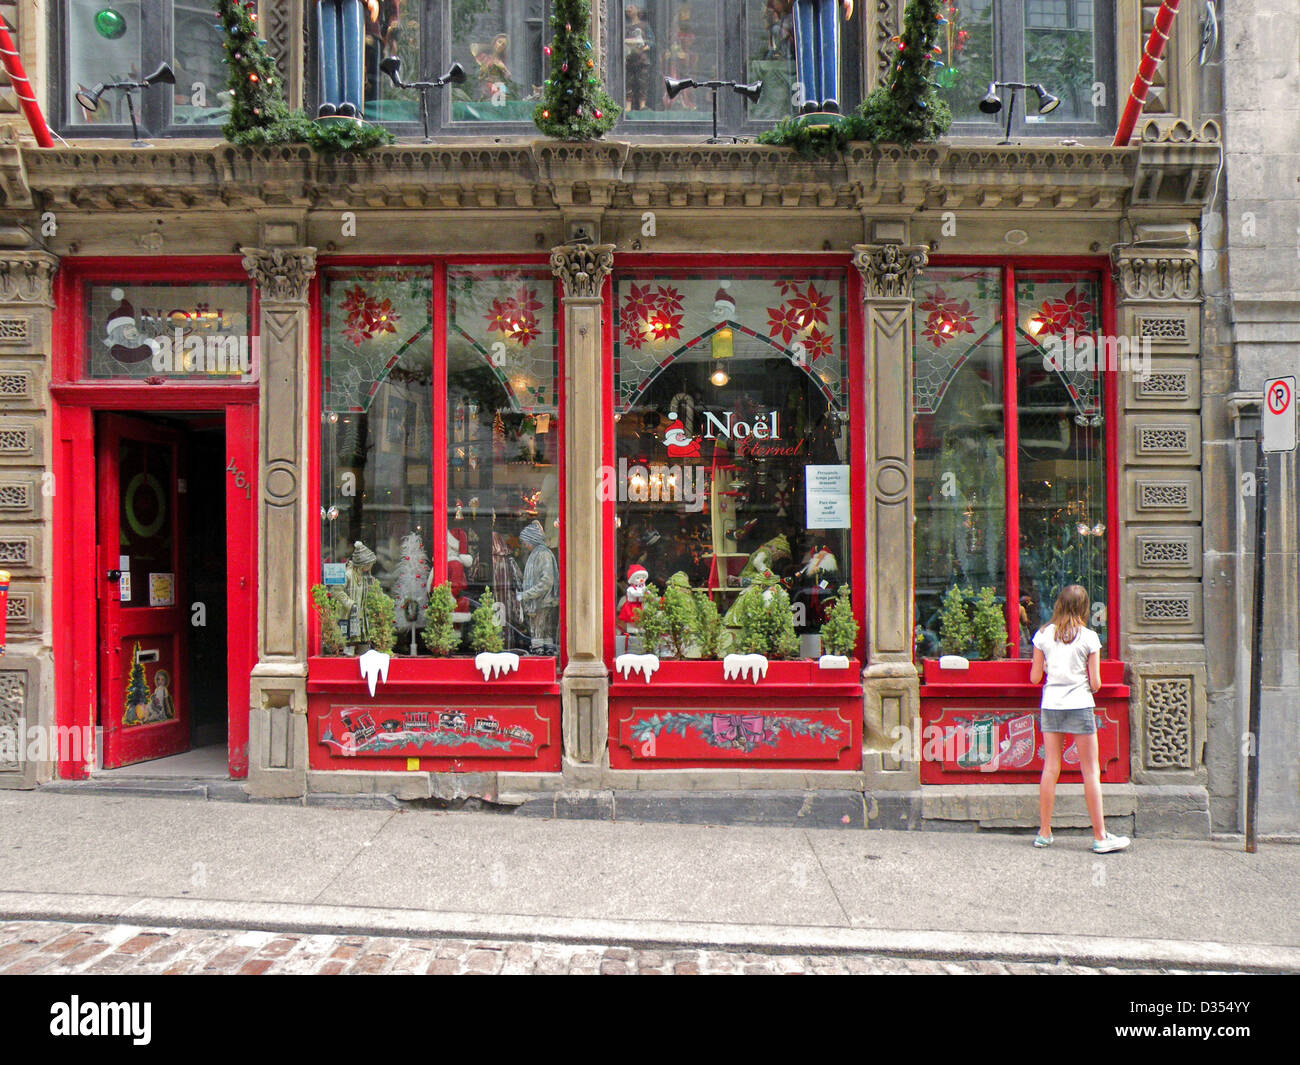 noel eternel a montreal canada christmas store photographed in august stock image - Noel Christmas Store